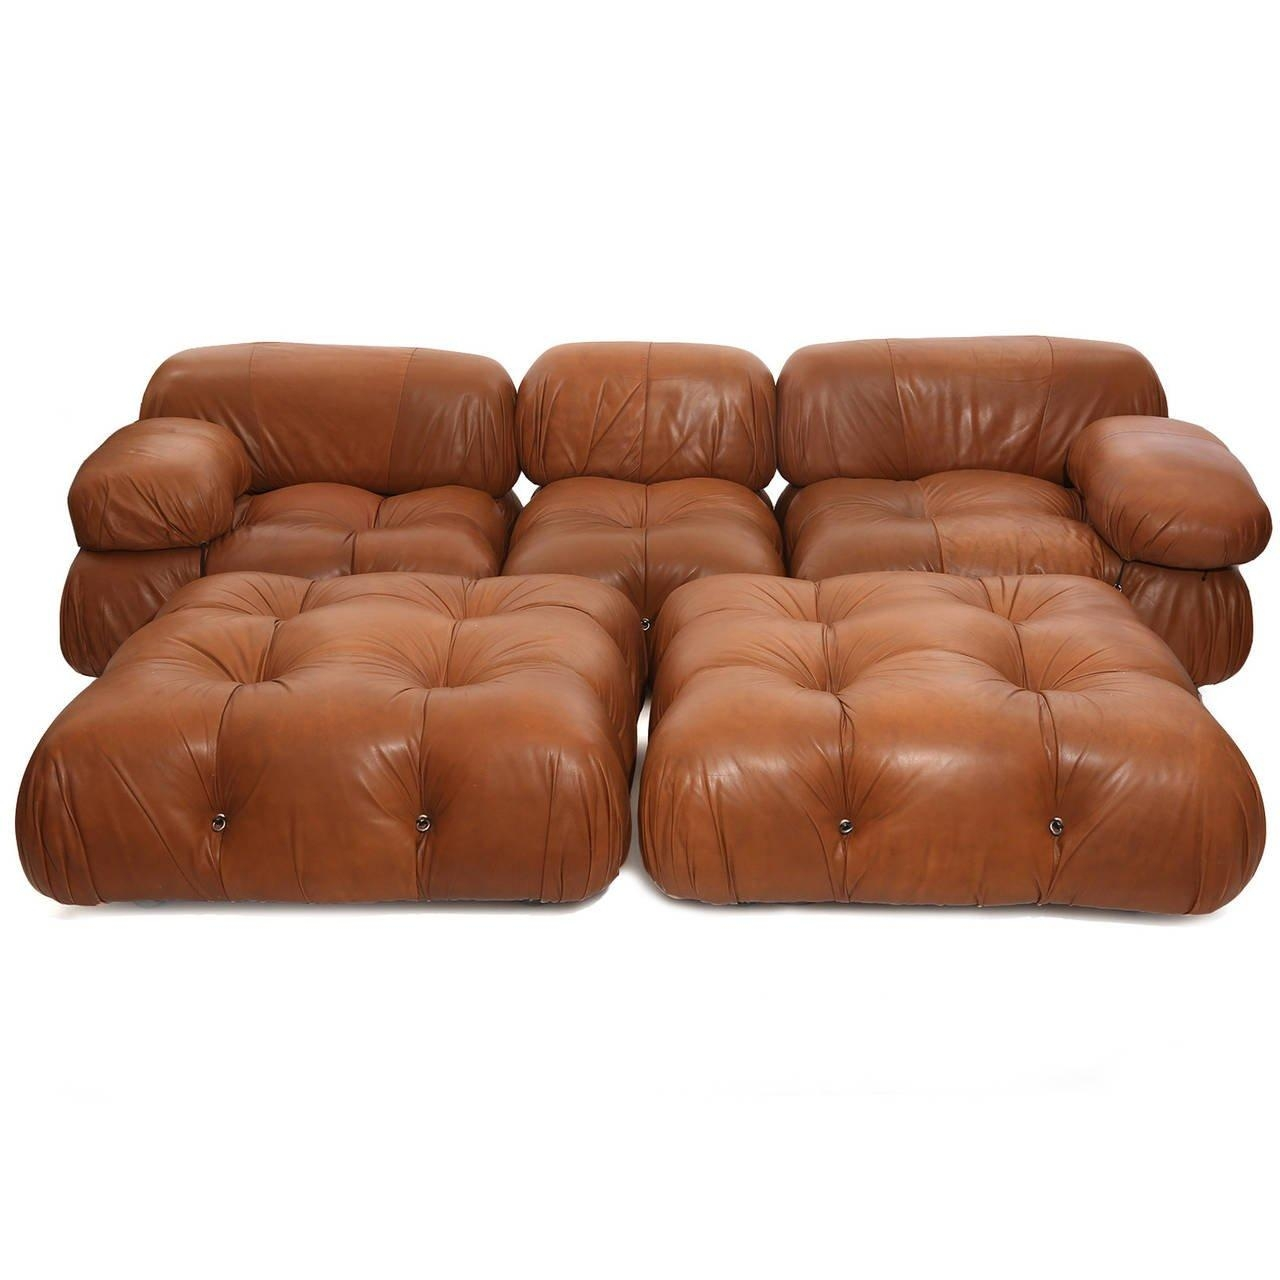 Rare Mario Bellini Camaleonda Sofa And Ottomans At 1Stdibs Pertaining To Bellini Sofas (View 7 of 20)